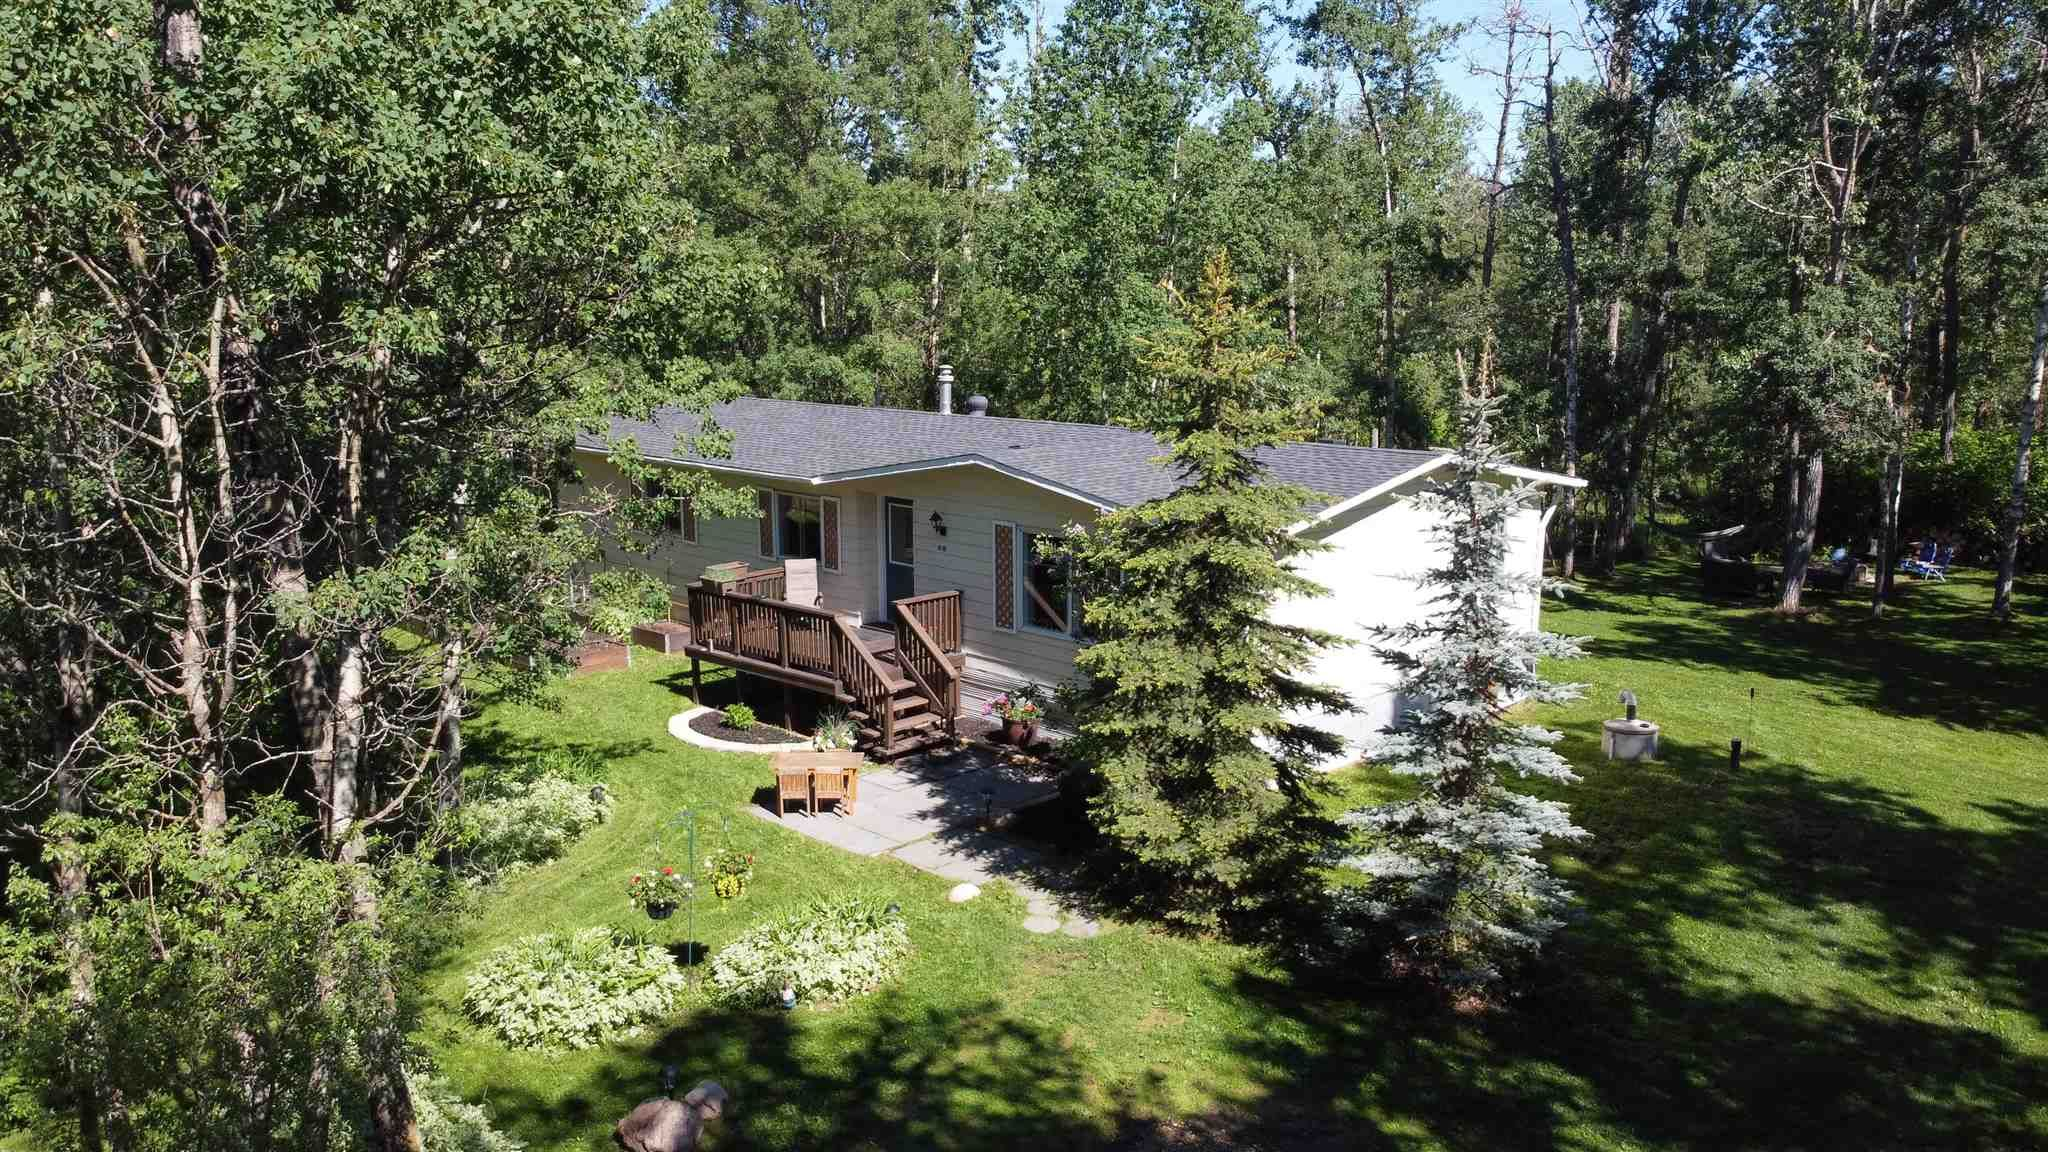 Main Photo: 302 51369 RGE RD 225: Rural Strathcona County Manufactured Home for sale : MLS®# E4249652